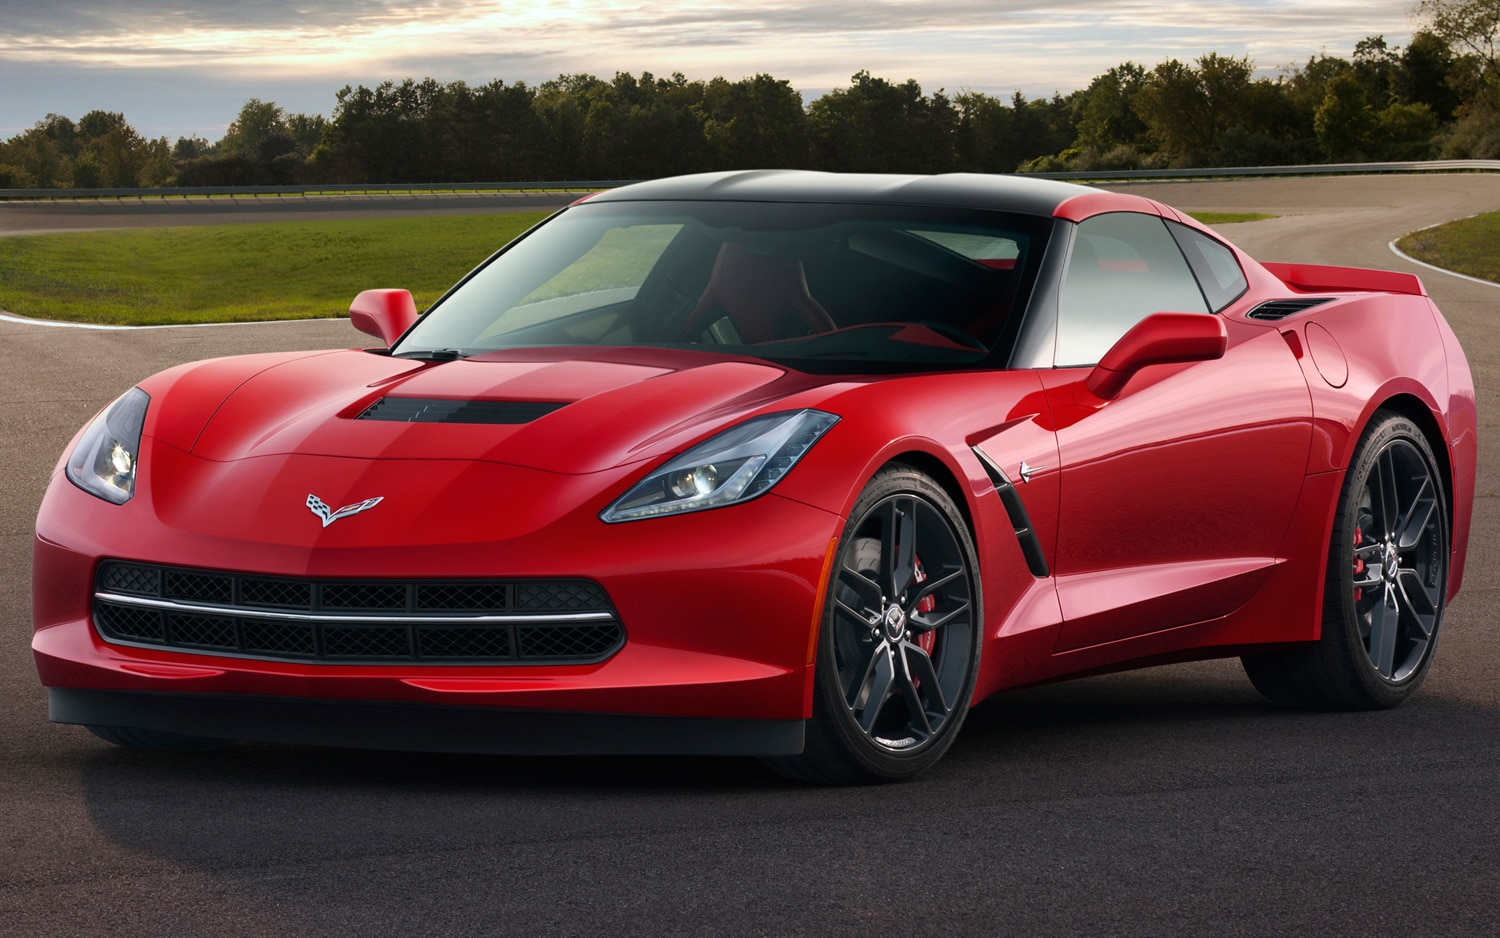 2014 Chevrolet Corvette Stingray Front Side View1